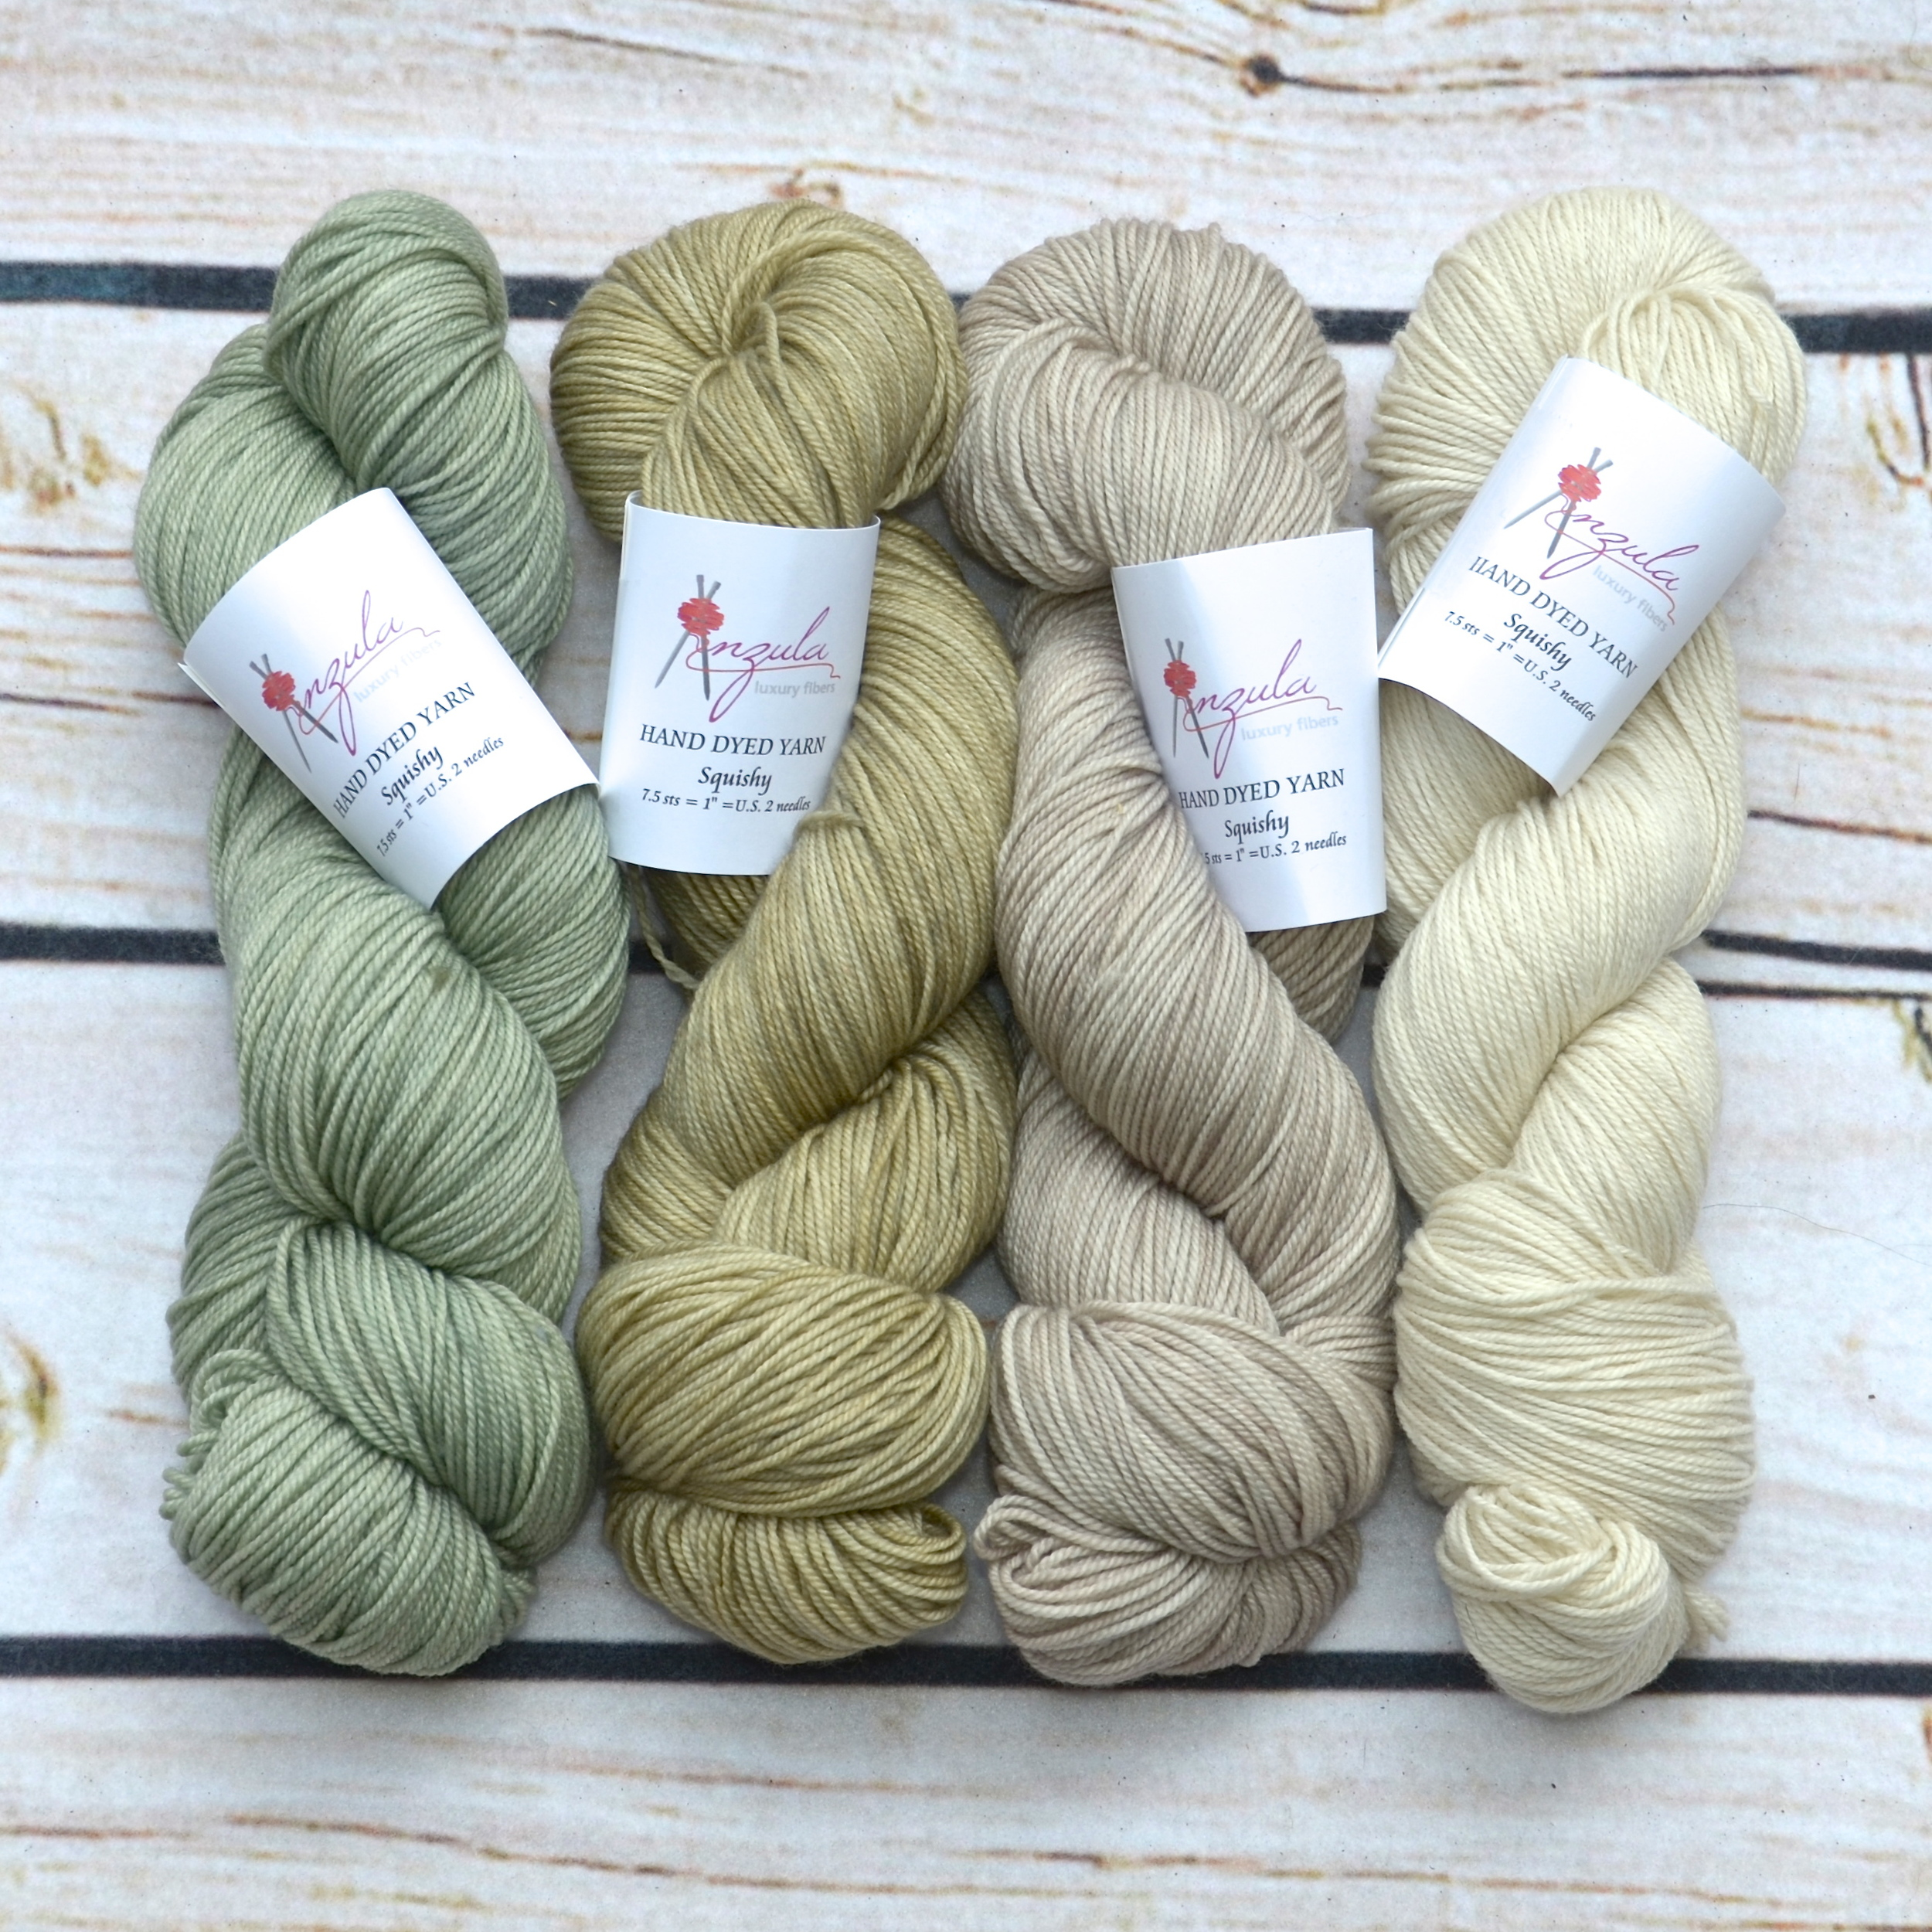 Anzula Squishy in Herb, Clay, Seaside and Natural